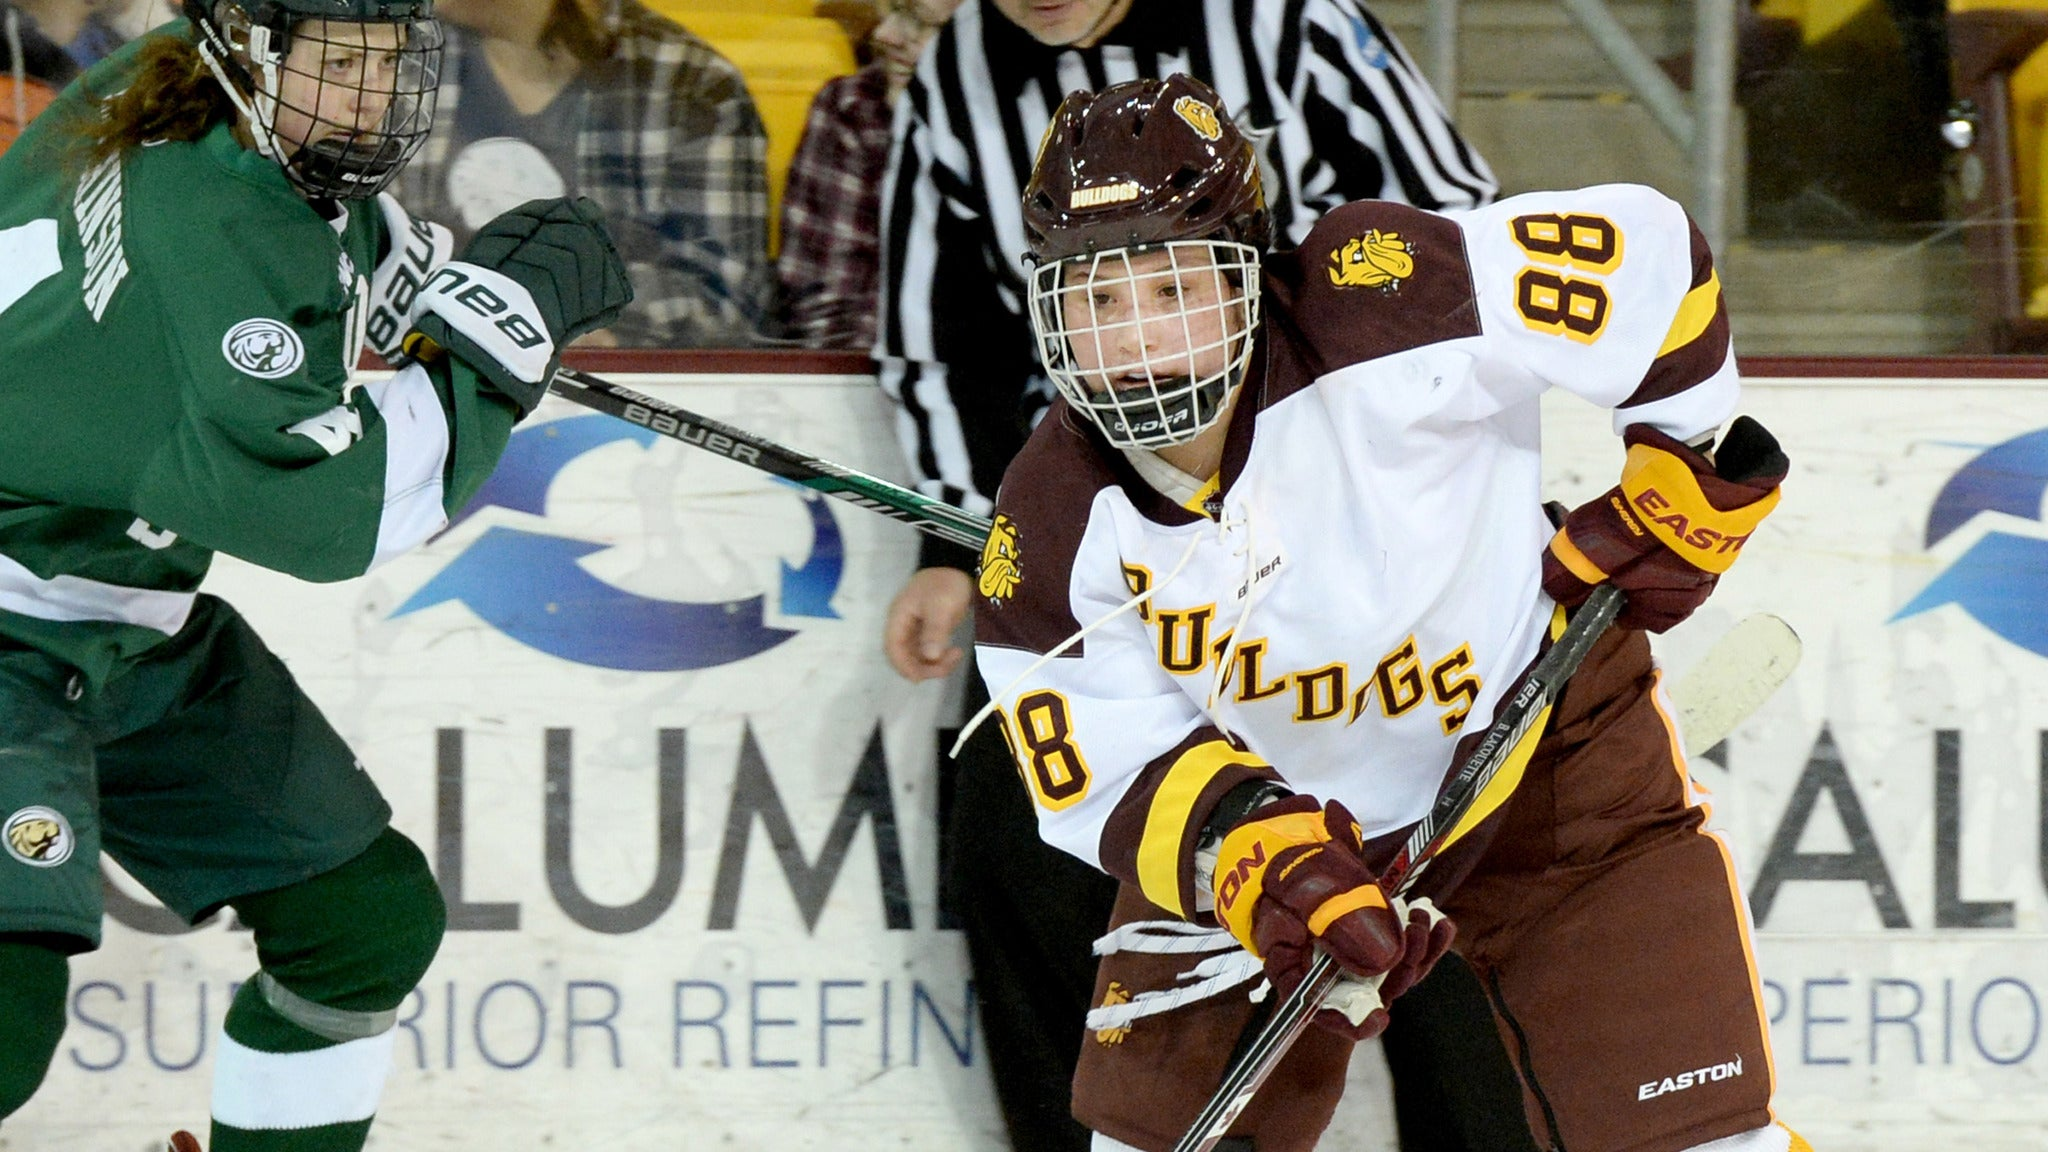 University of Minnesota Duluth Bulldogs Womens Hockey vs. Minnesota Whitecaps